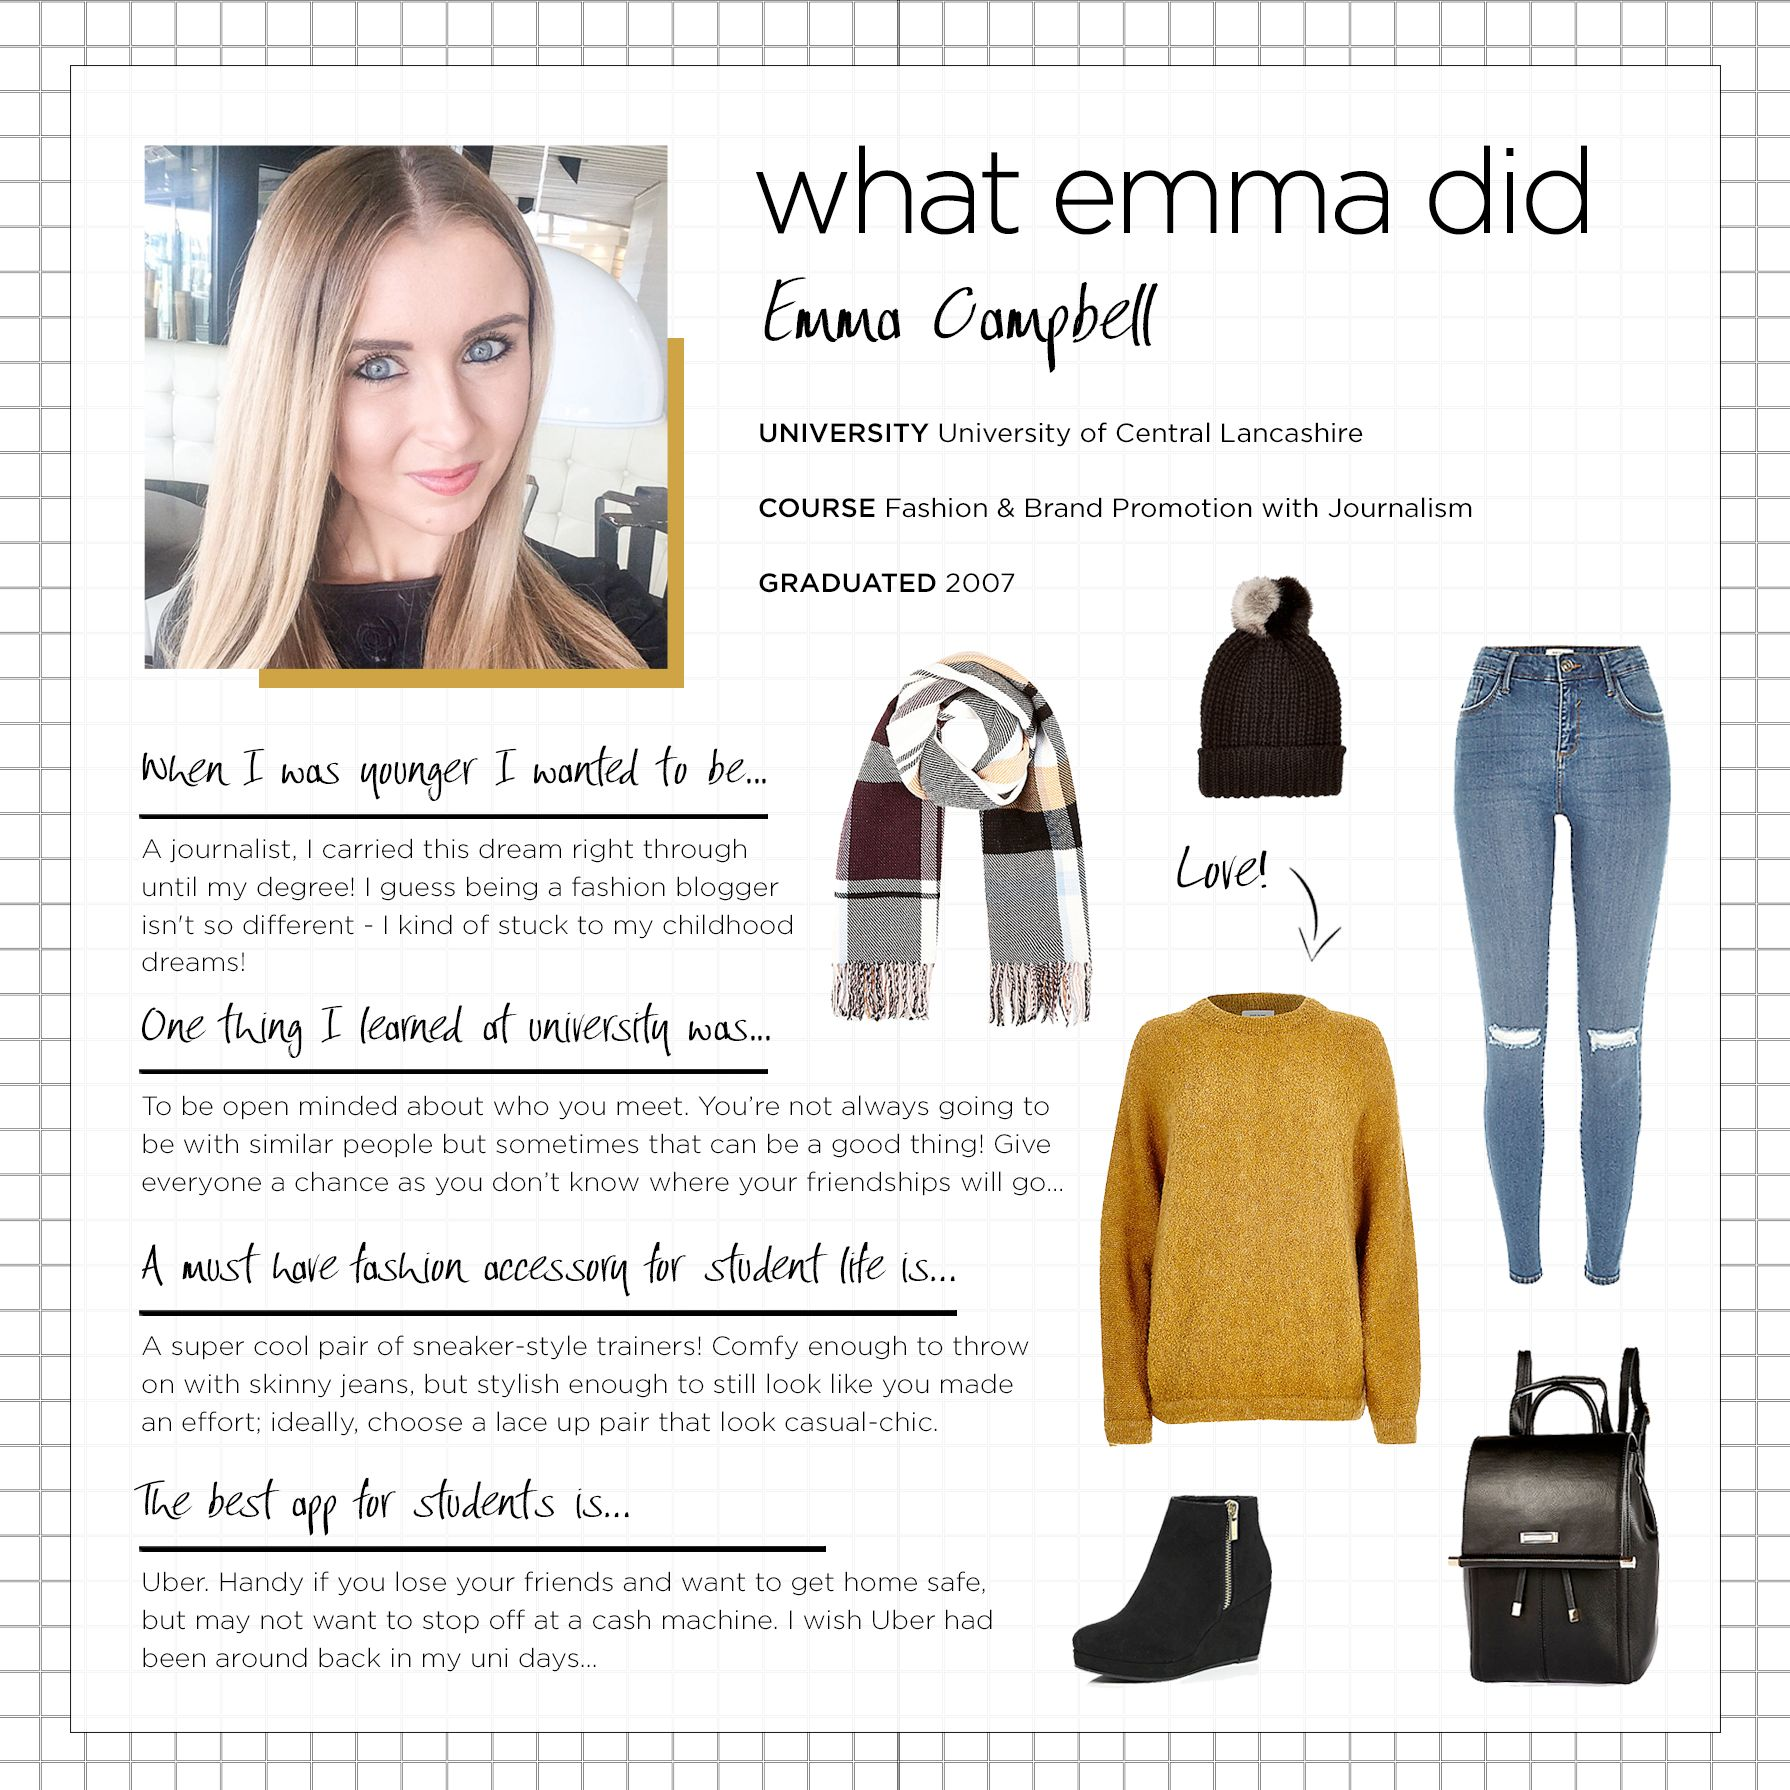 WHAT EMMA DID